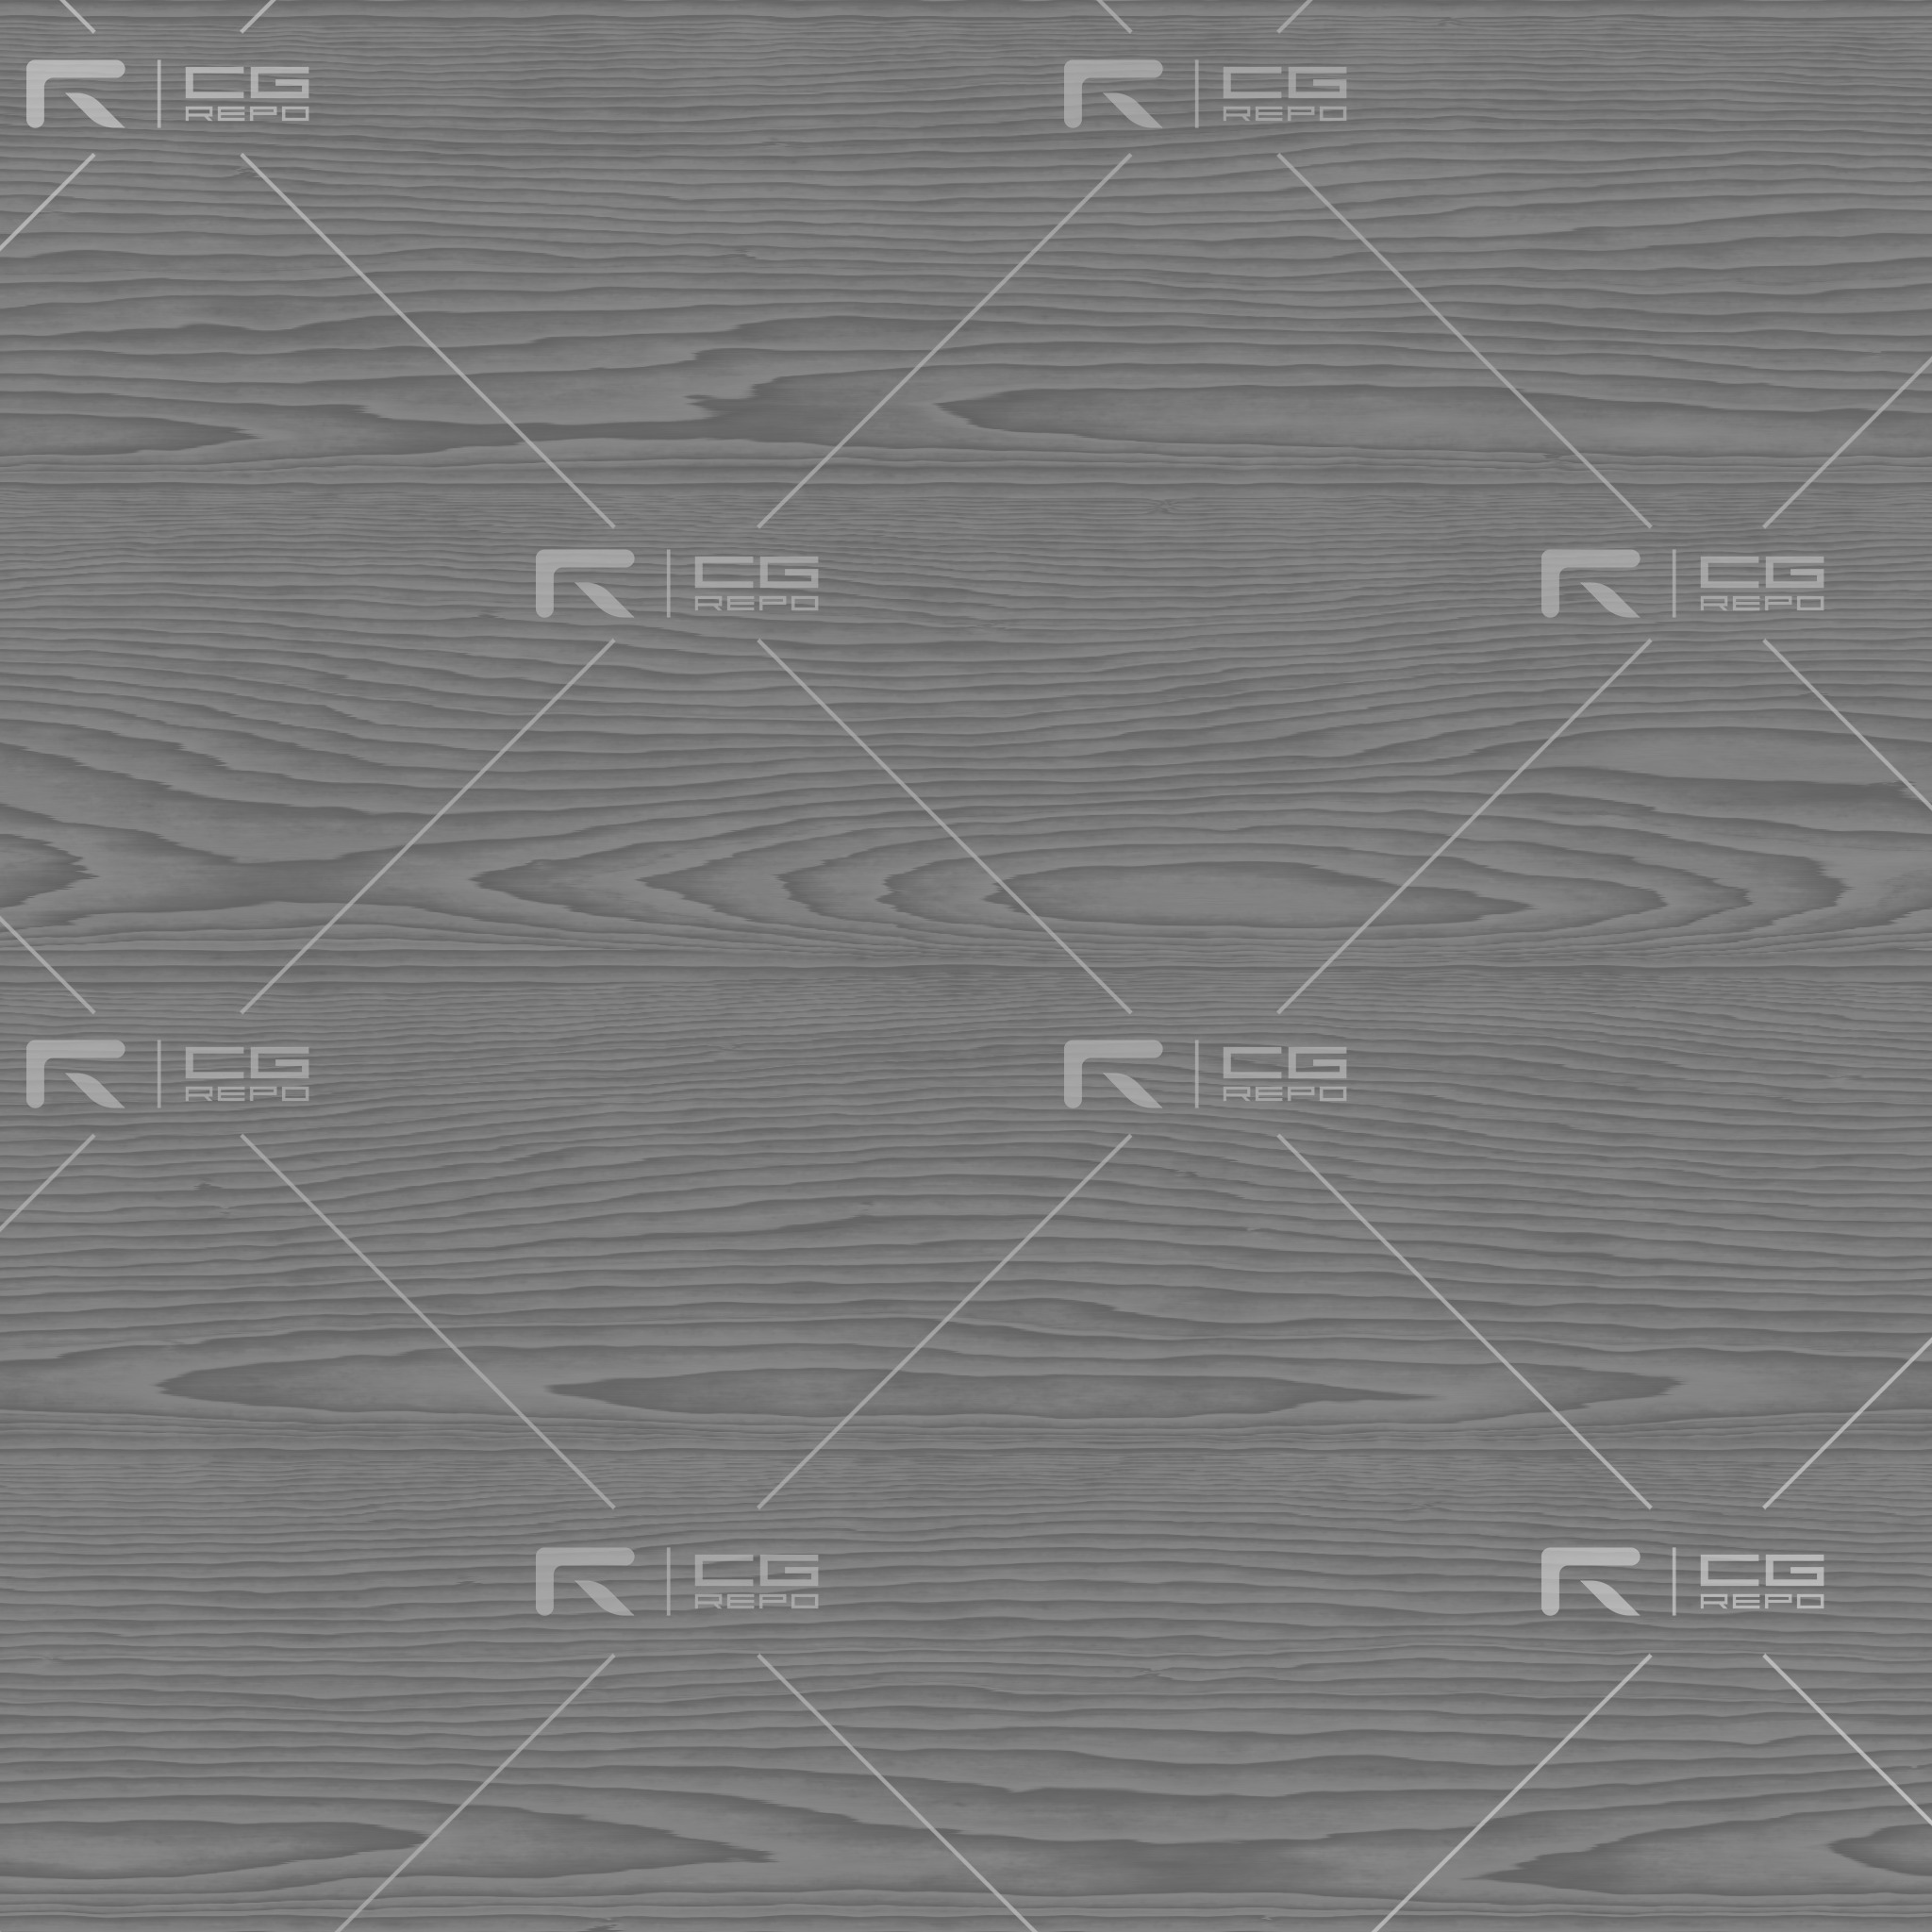 Oak - White Washed - Flat Roughness Texture